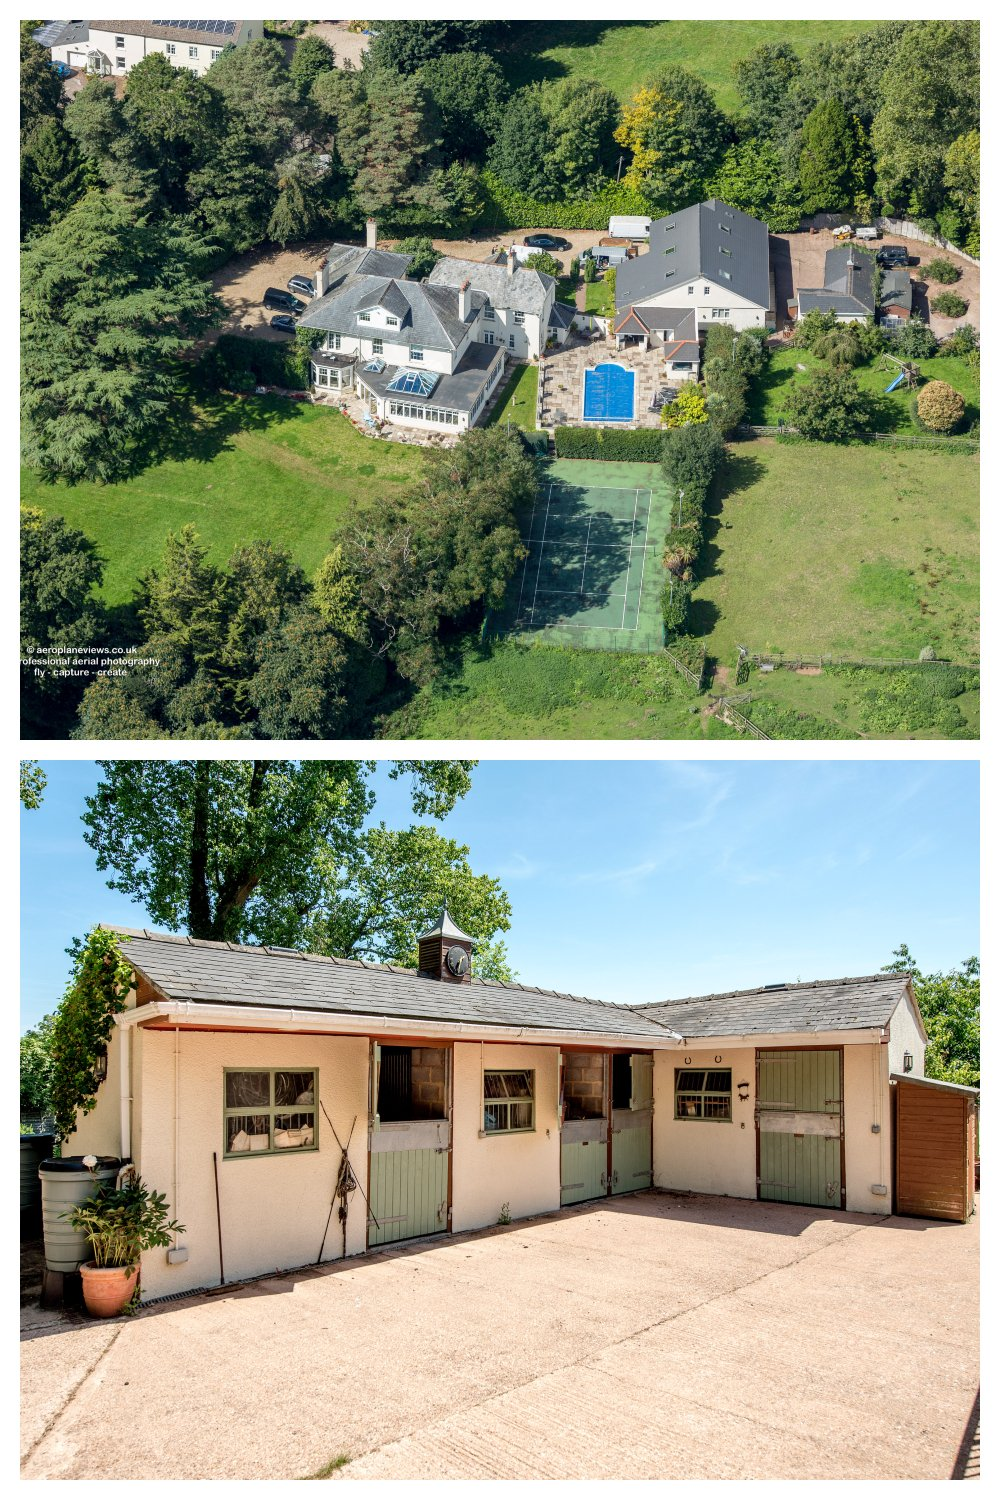 Prime Homes For Horses Six Equestrian Properties For Sale With Home Interior And Landscaping Oversignezvosmurscom